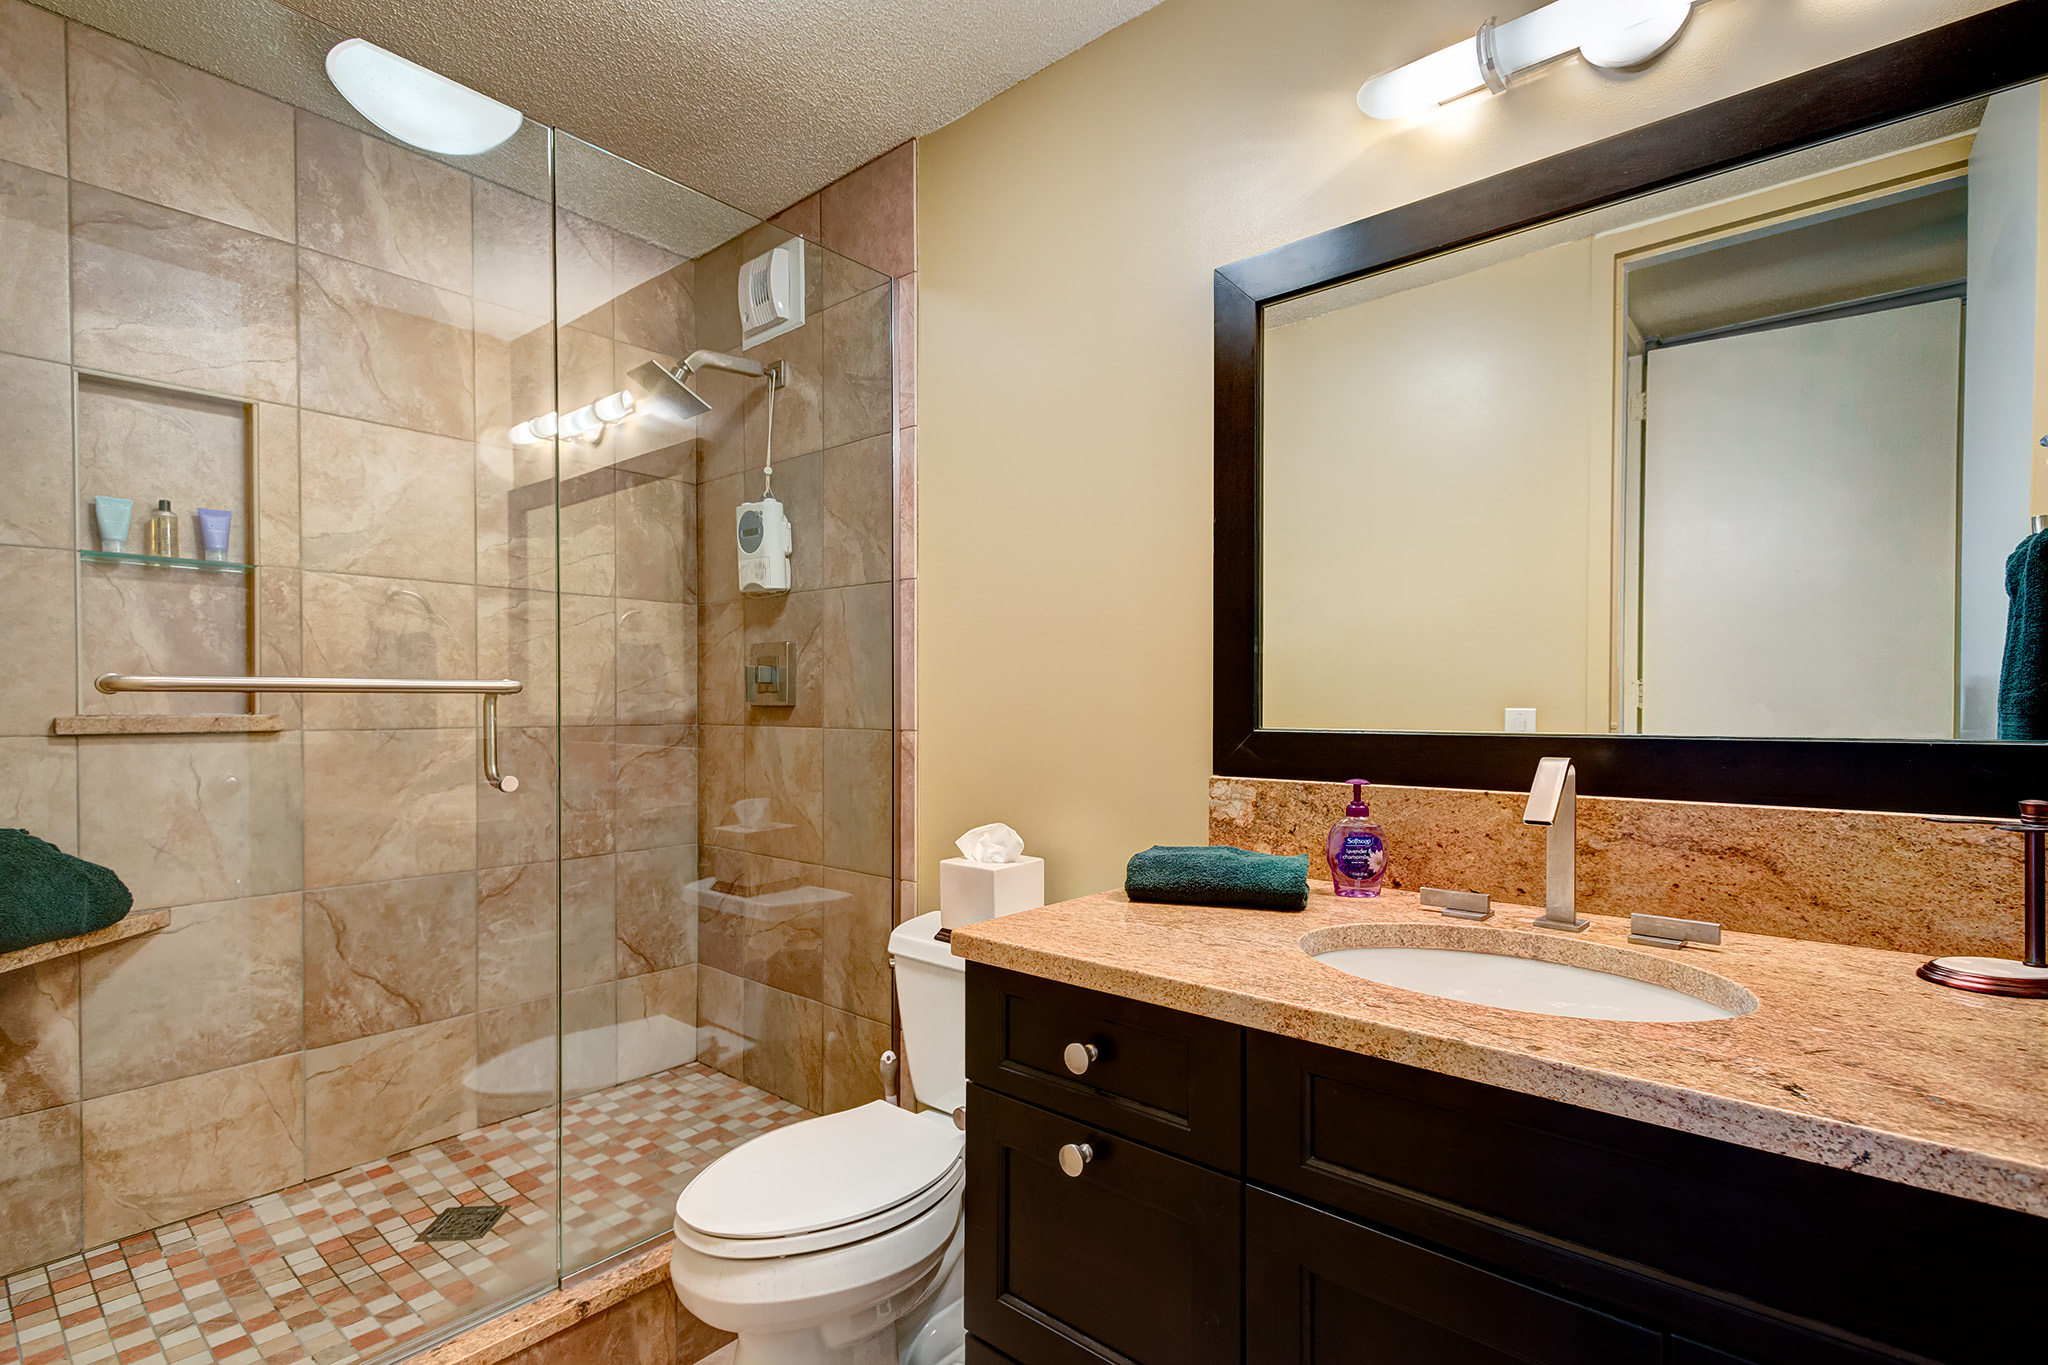 Bathroom Remodeling Chicago Bathroom Renovation Project Chicago Il  Michael Menn Ltd .